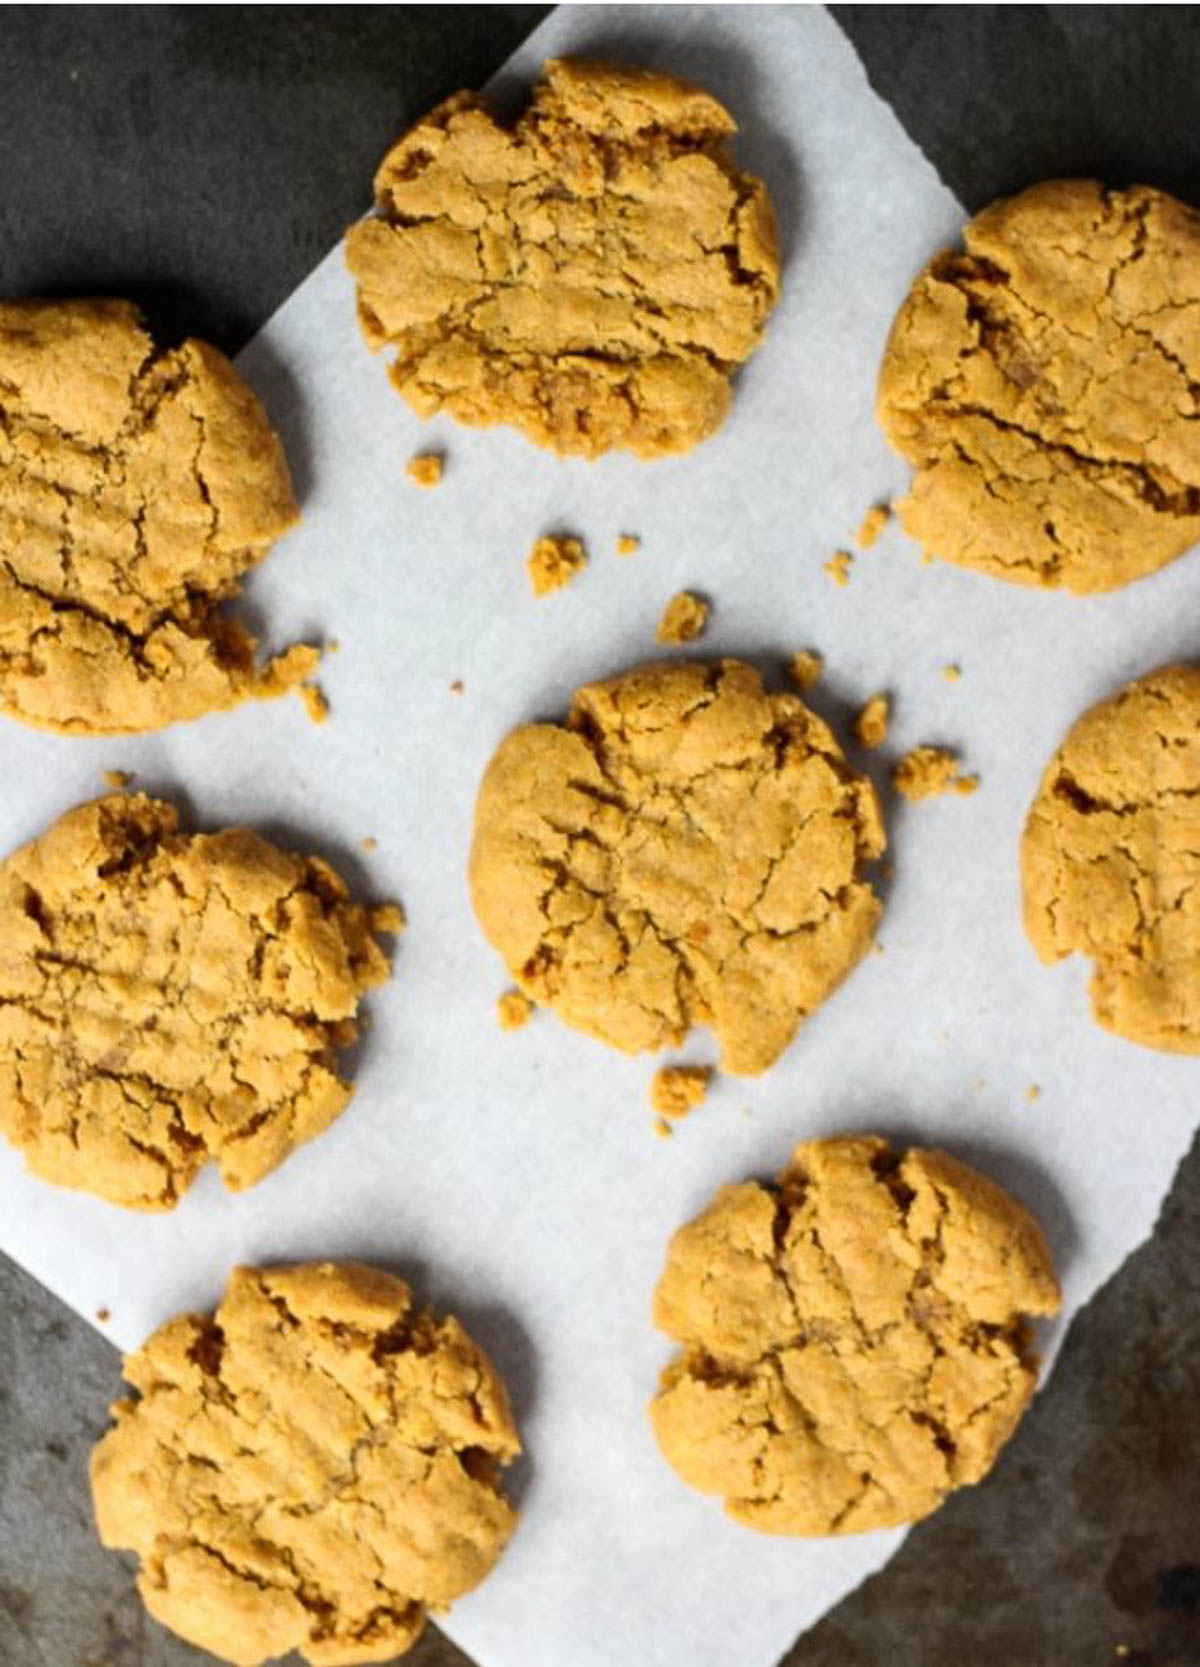 Overhead of peanut butter cookies cooling on baking sheet.